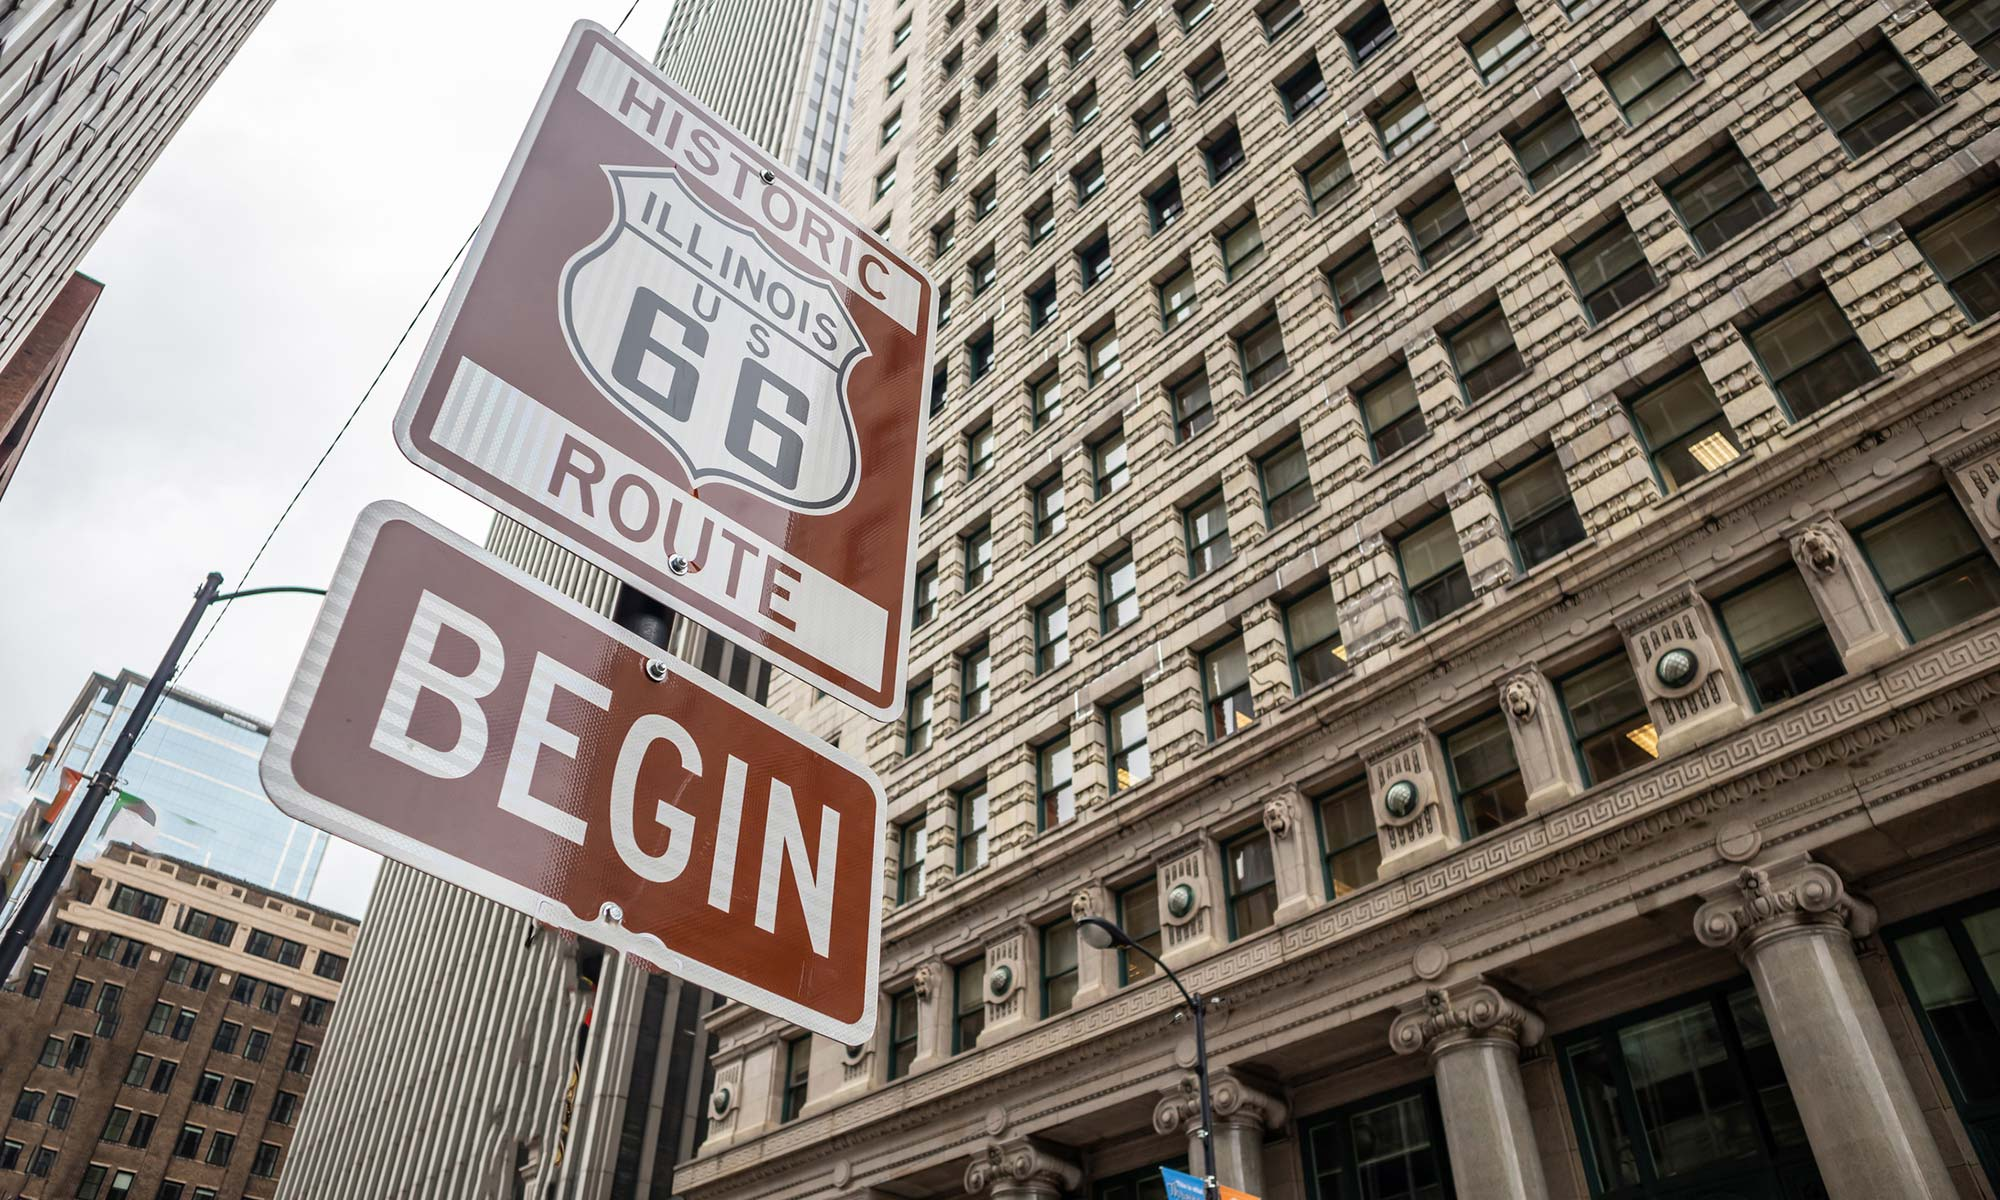 A sign signifying the start of the historic Route 66 in downtown Chicago, Illinois.